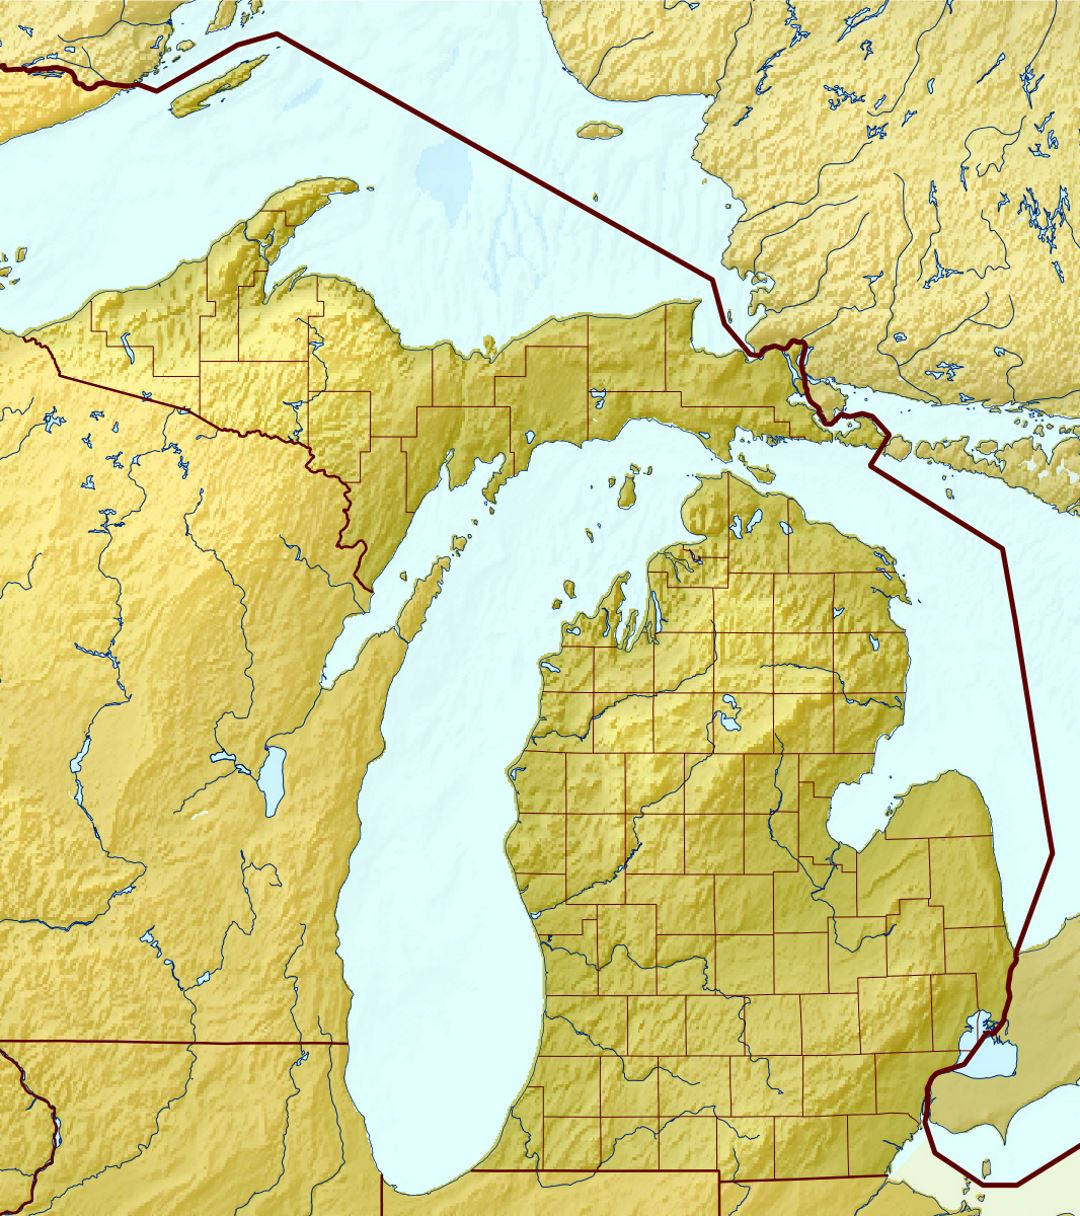 Large relief map of Michigan state